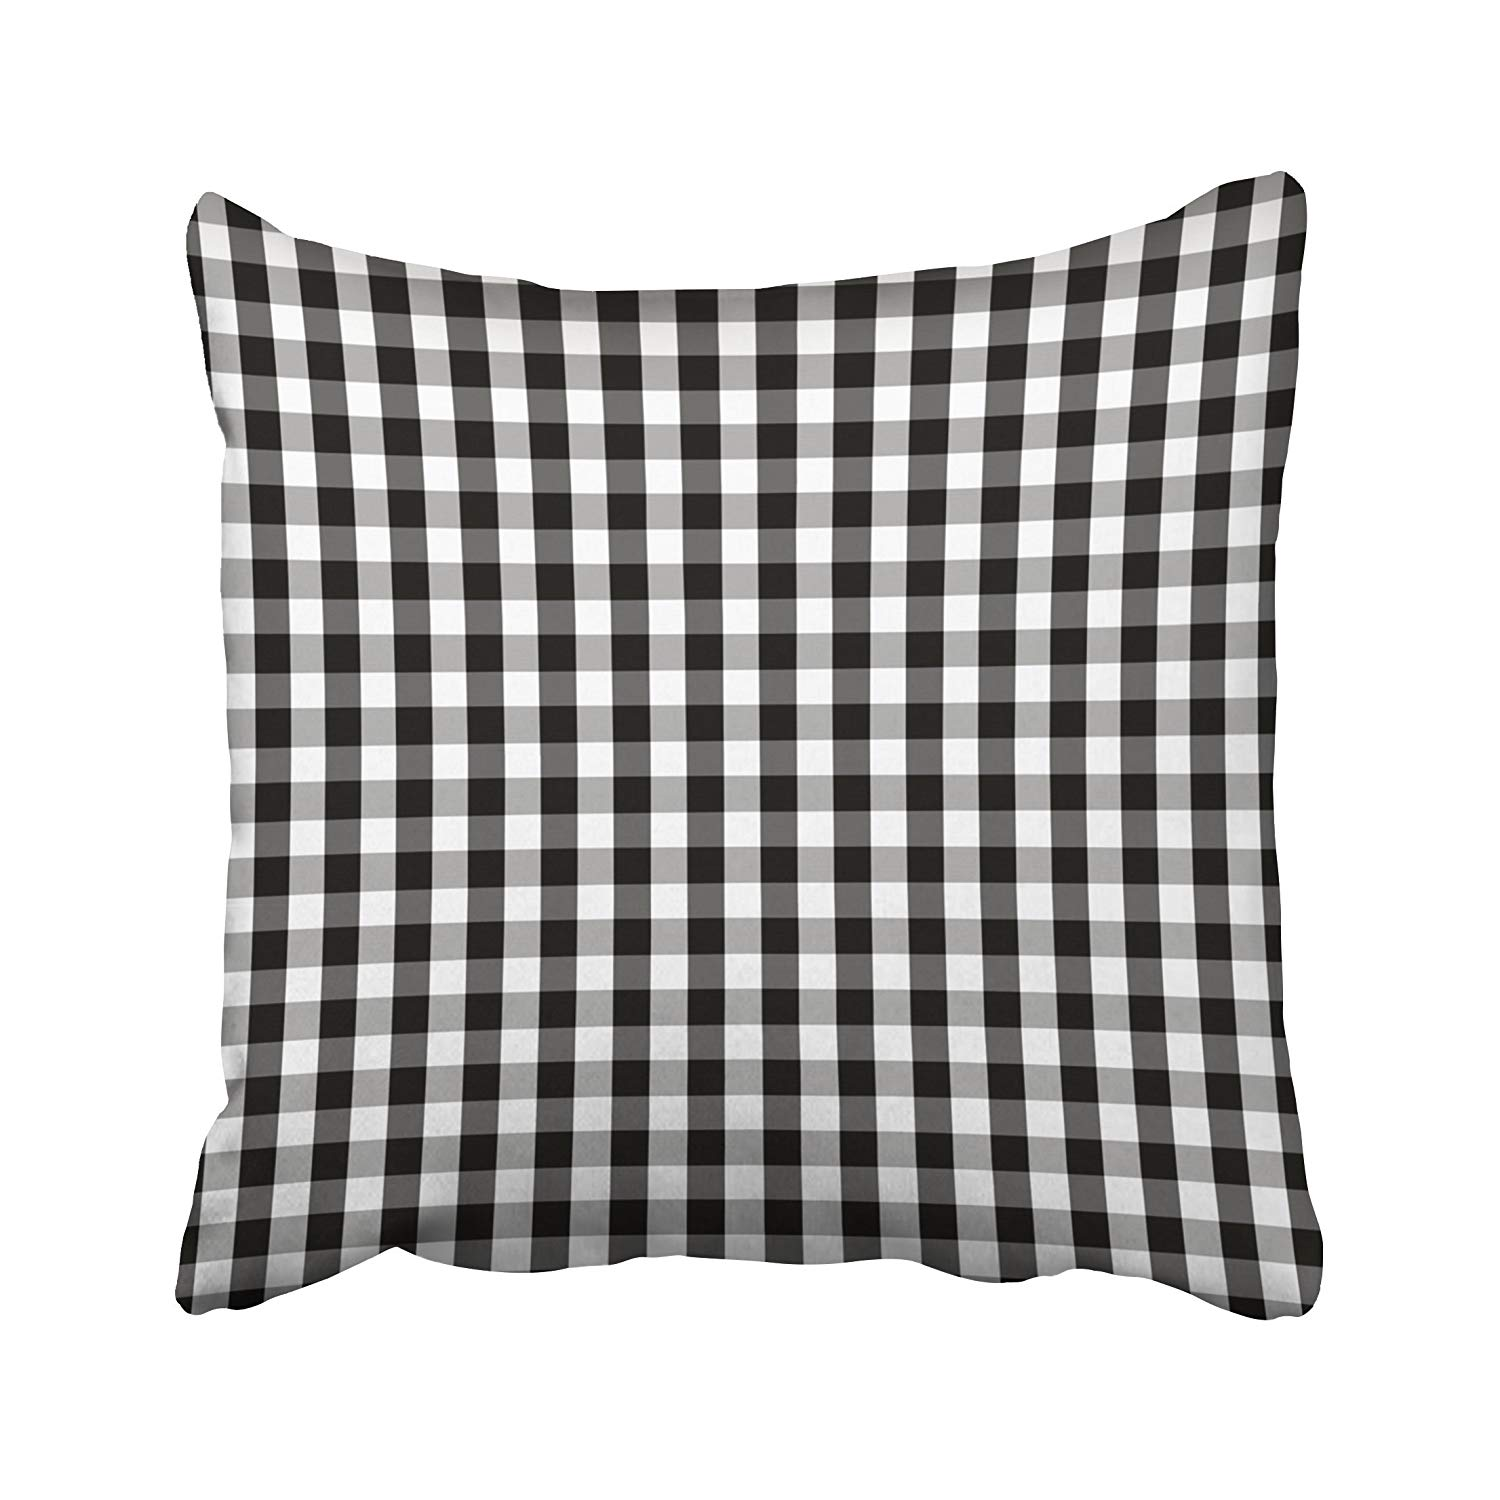 WOPOP Plaid Black And White Buffalo Gingham Pattern With Slight Grain And Checks Pillowcase Cushion Cover 18x18 inch